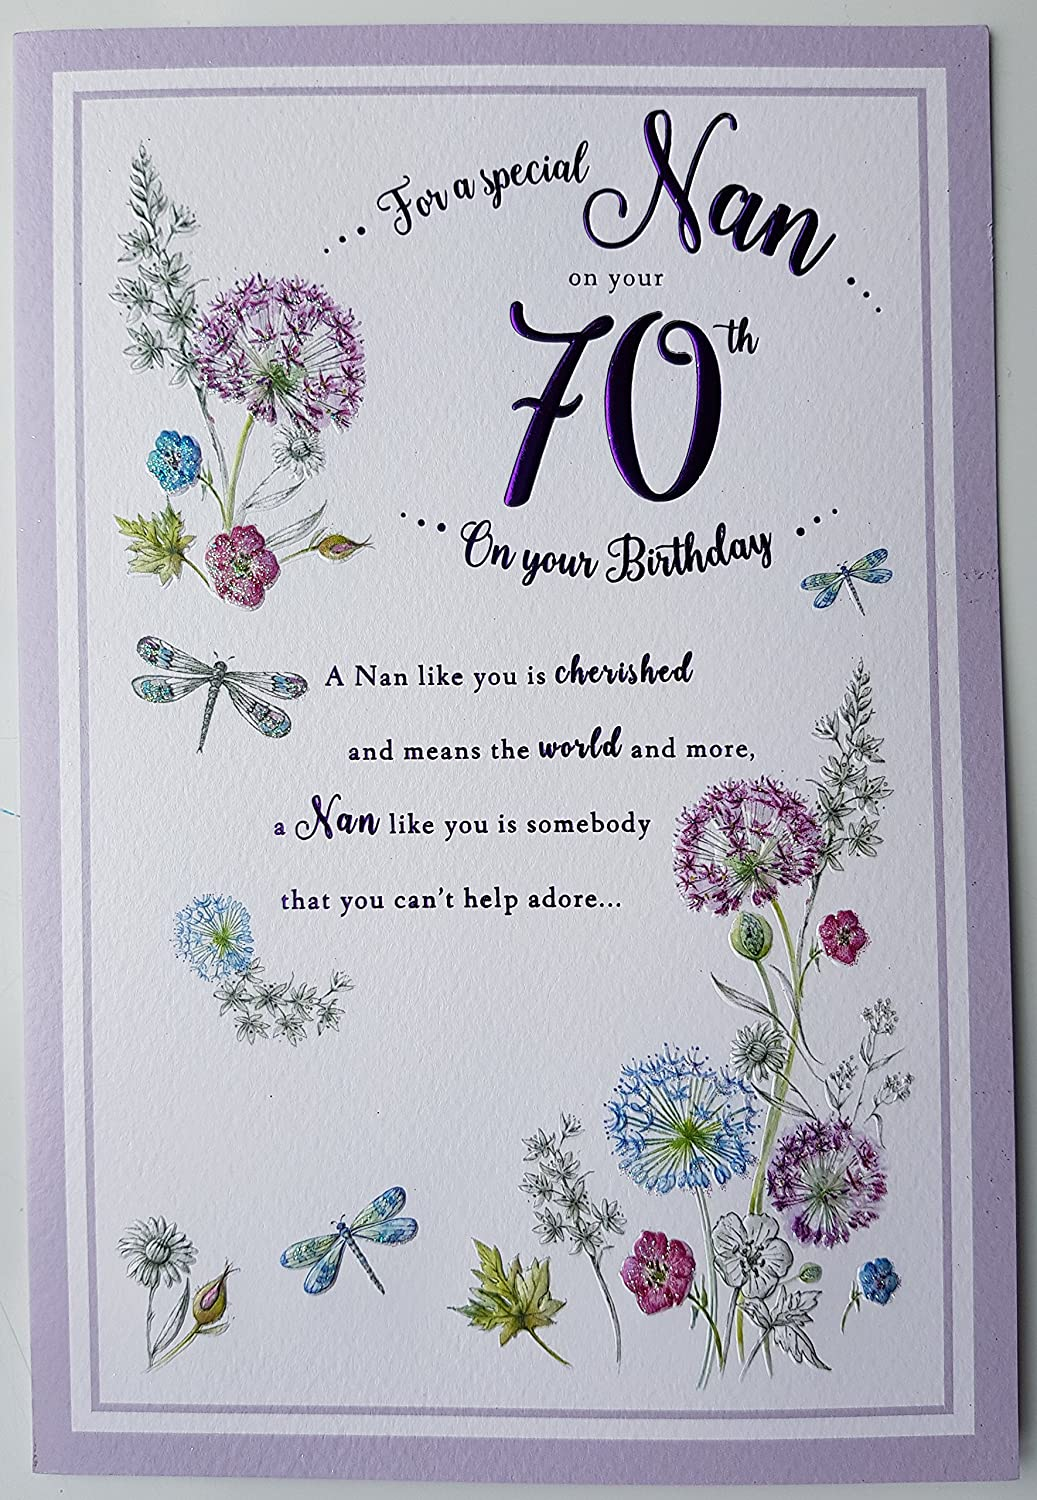 For A Special Nan On Your 70th Birthday Card Amazoncouk Office Products